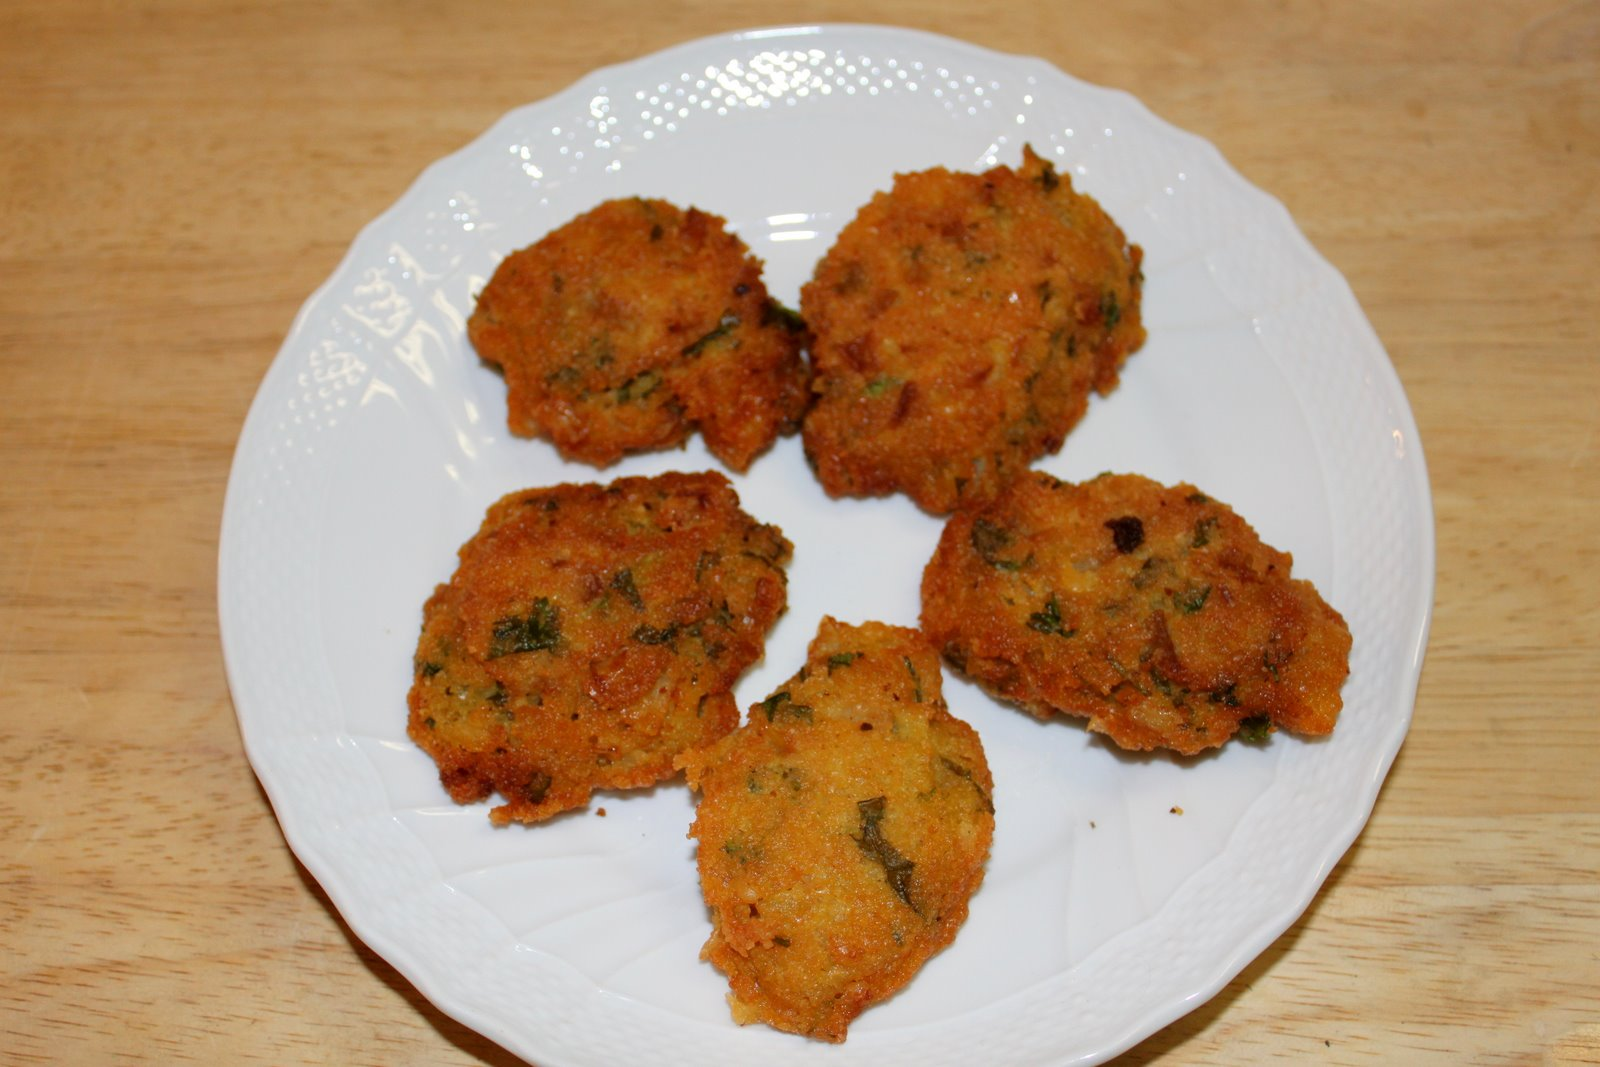 My sister in law, who is Bengali, made these wonderful fried lentils ...